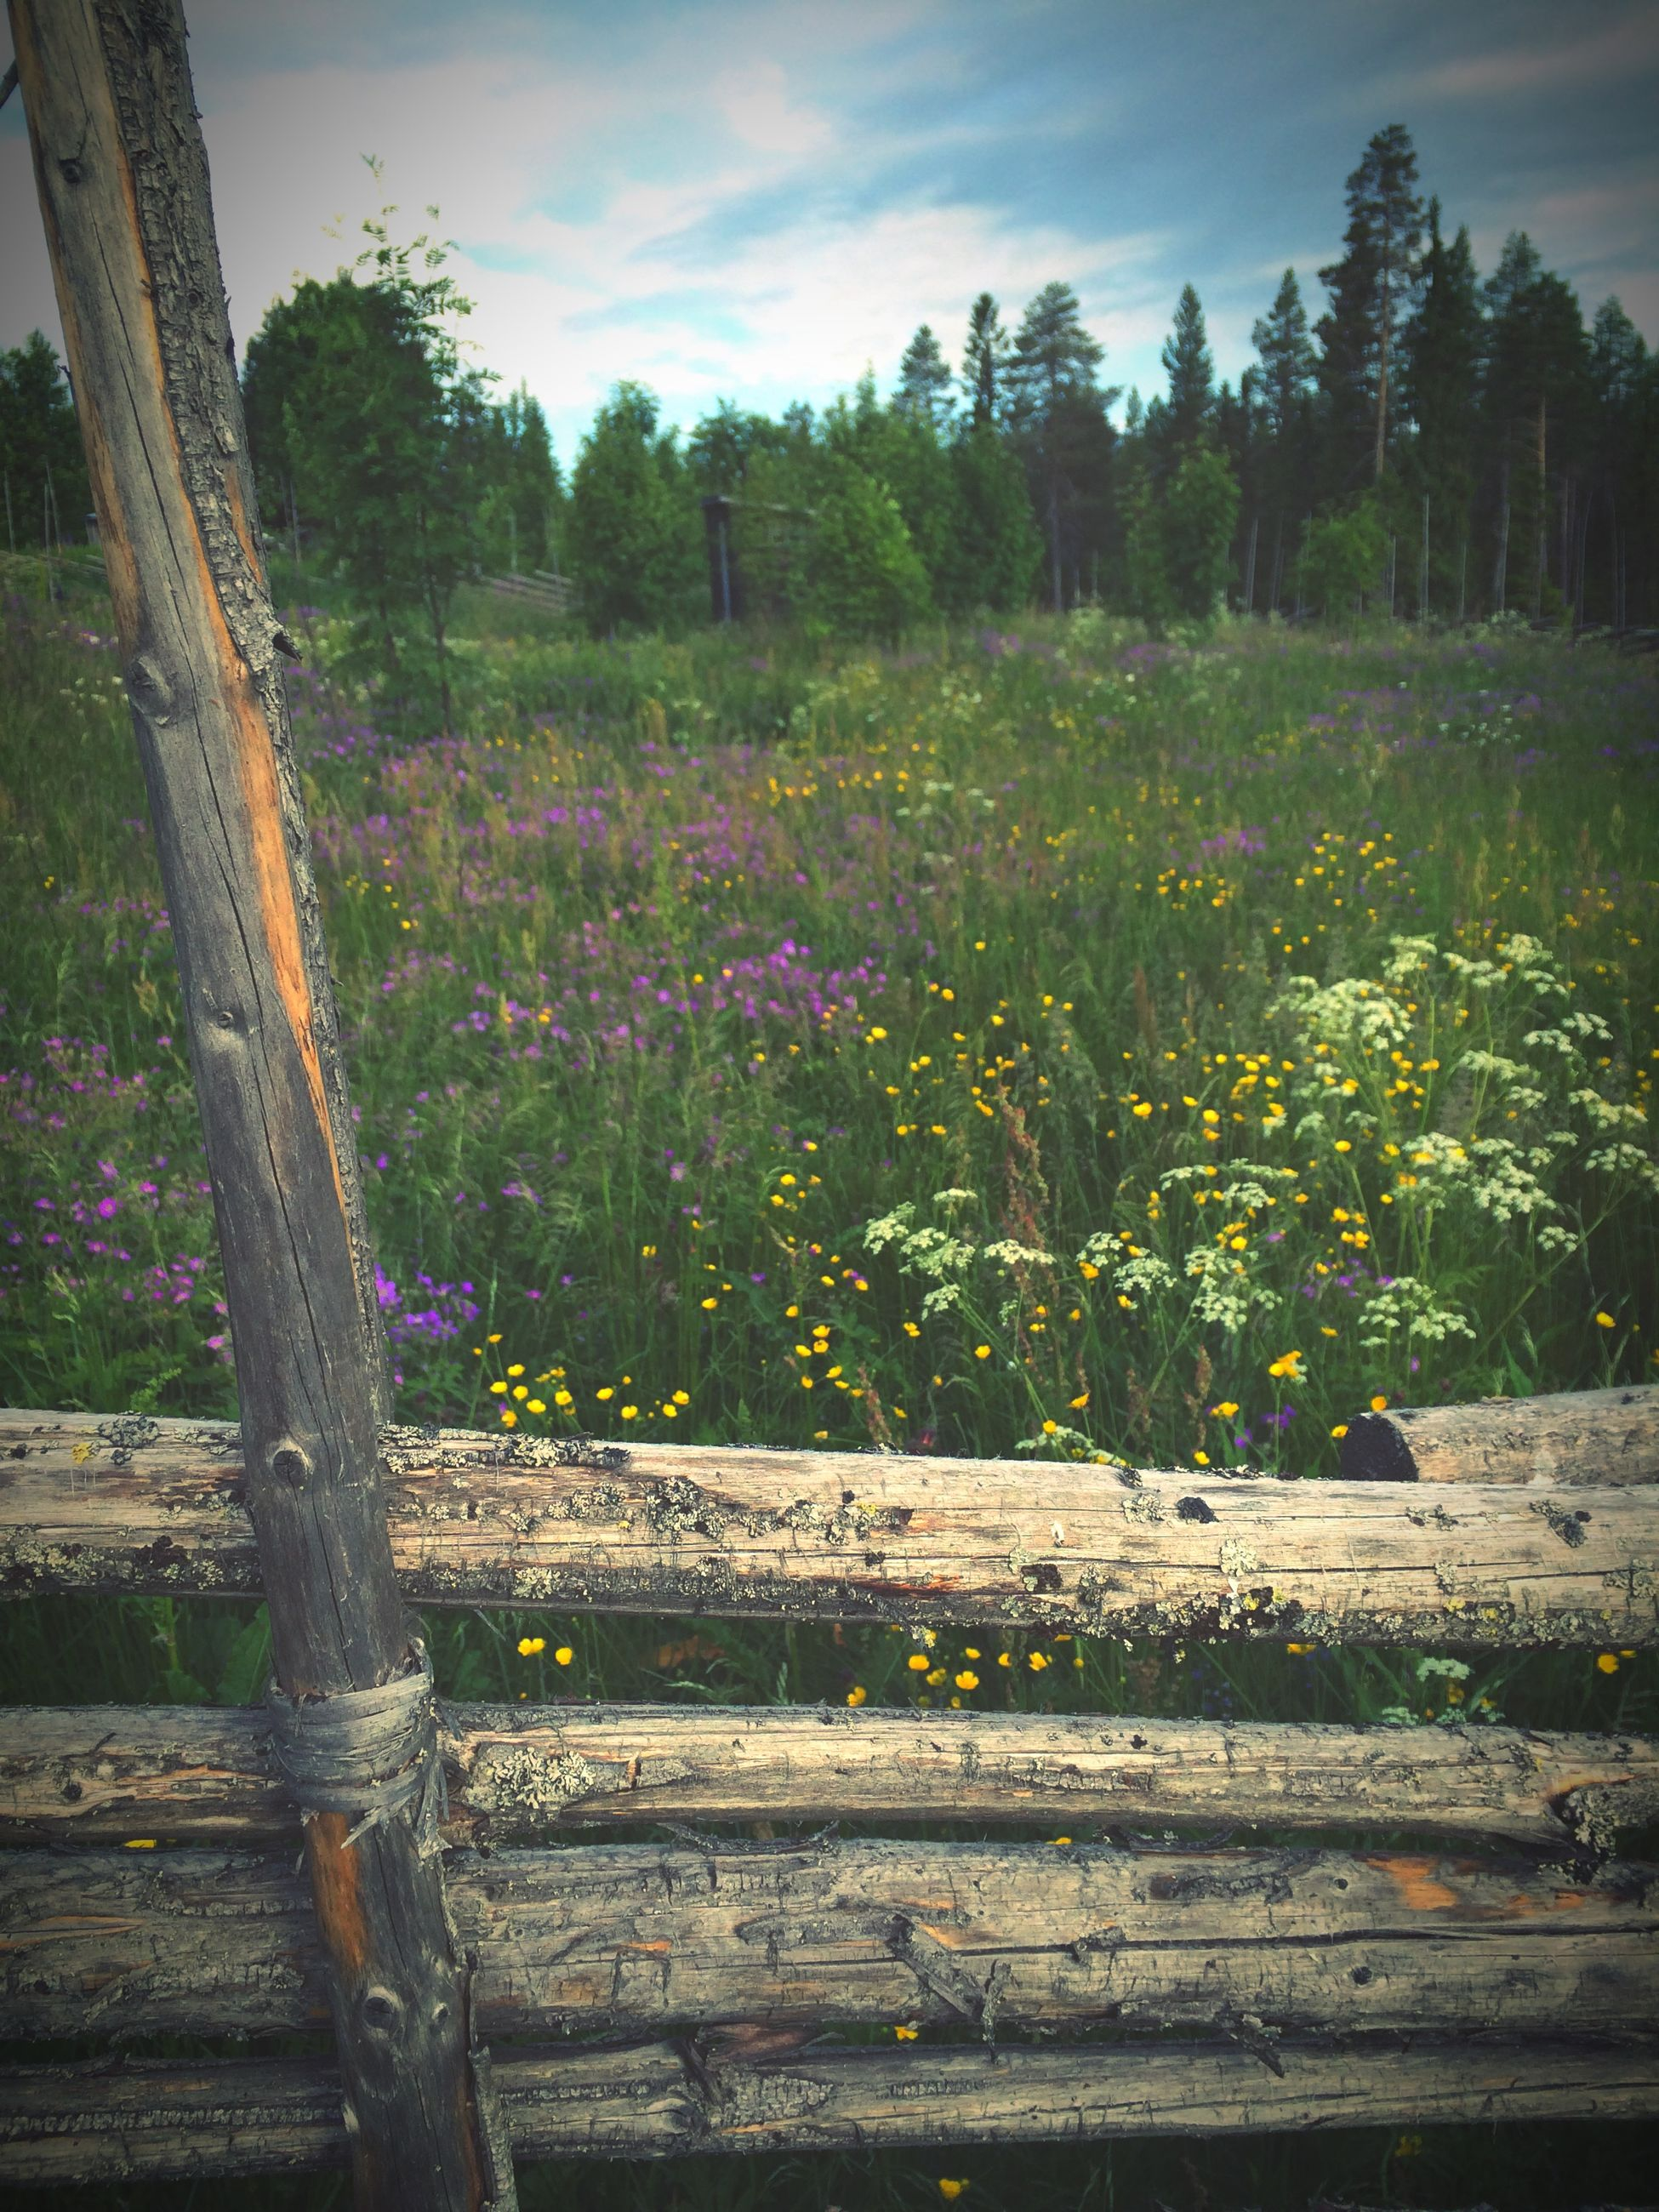 flower, growth, plant, tree, beauty in nature, nature, freshness, tranquility, wood - material, sky, tranquil scene, fragility, field, day, outdoors, wooden, landscape, park - man made space, blossom, blooming